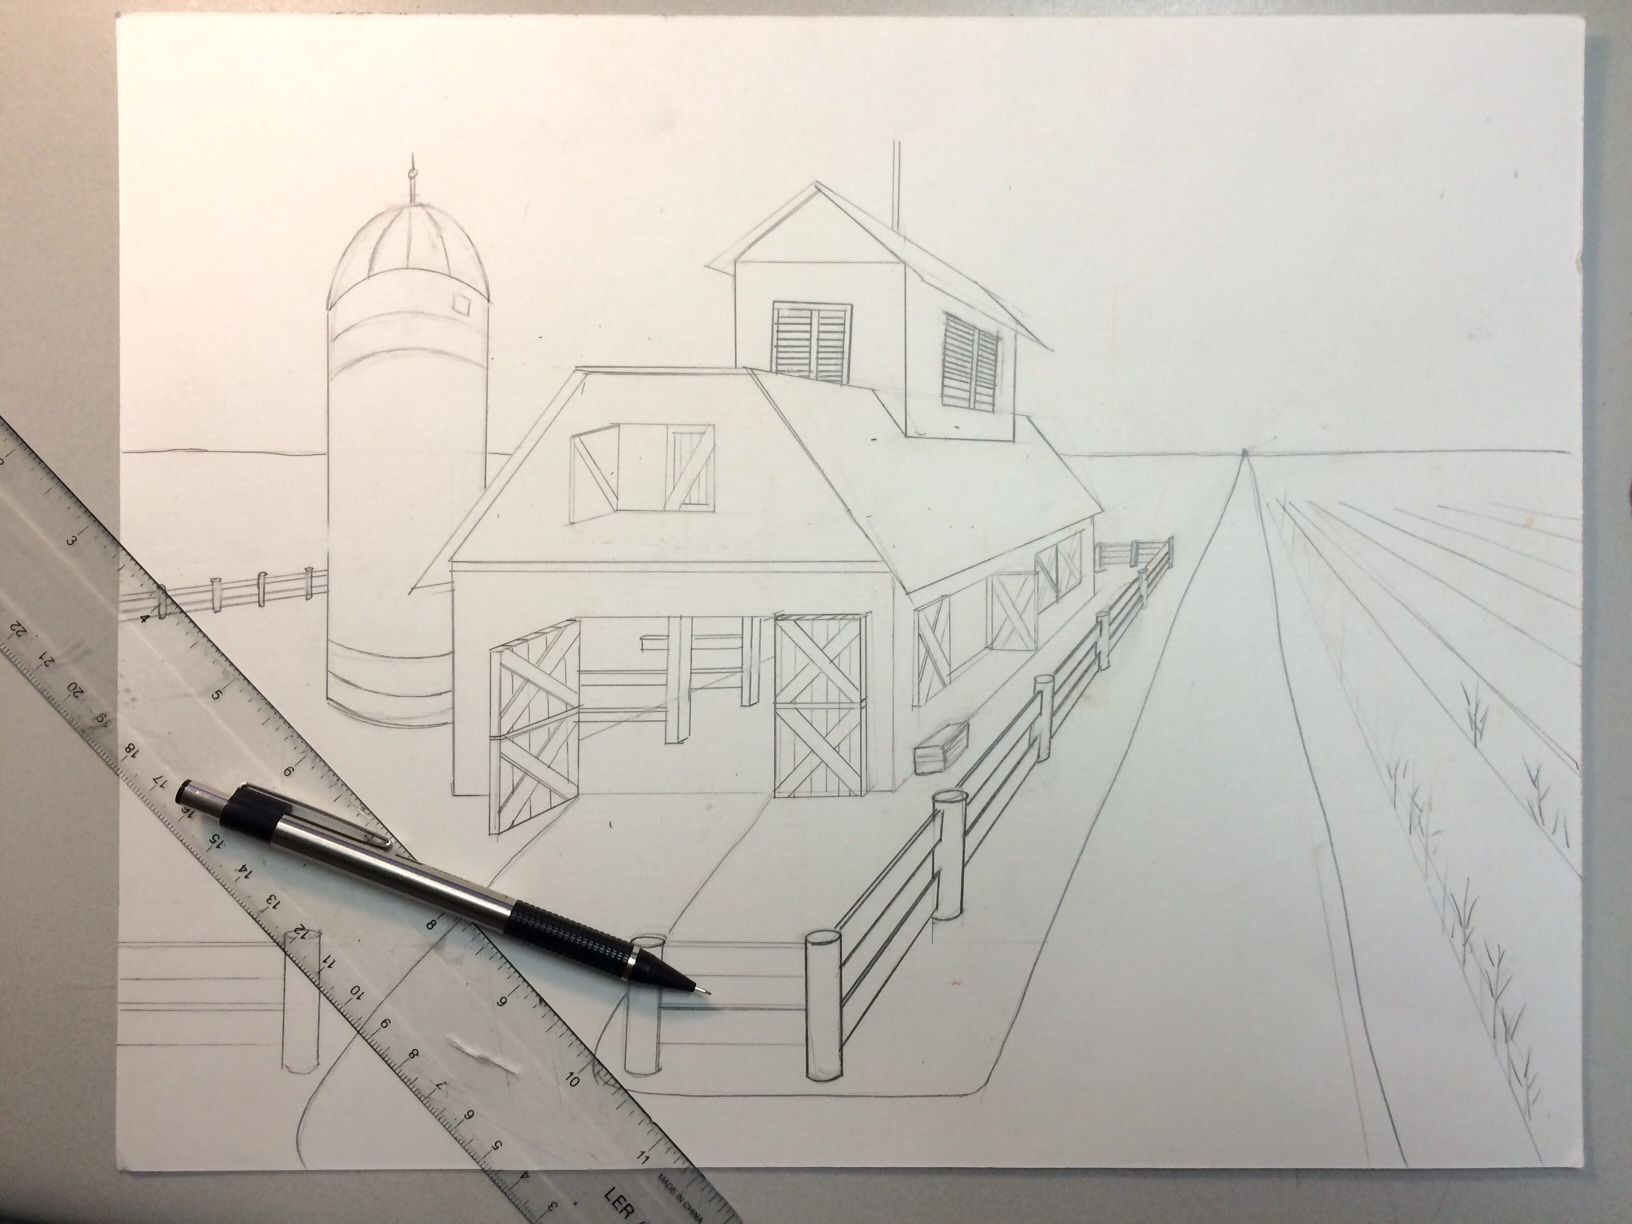 One Point Perspective Barn Watercolor Painting Lesson One Point Perspective Painting Lessons Barn Drawing